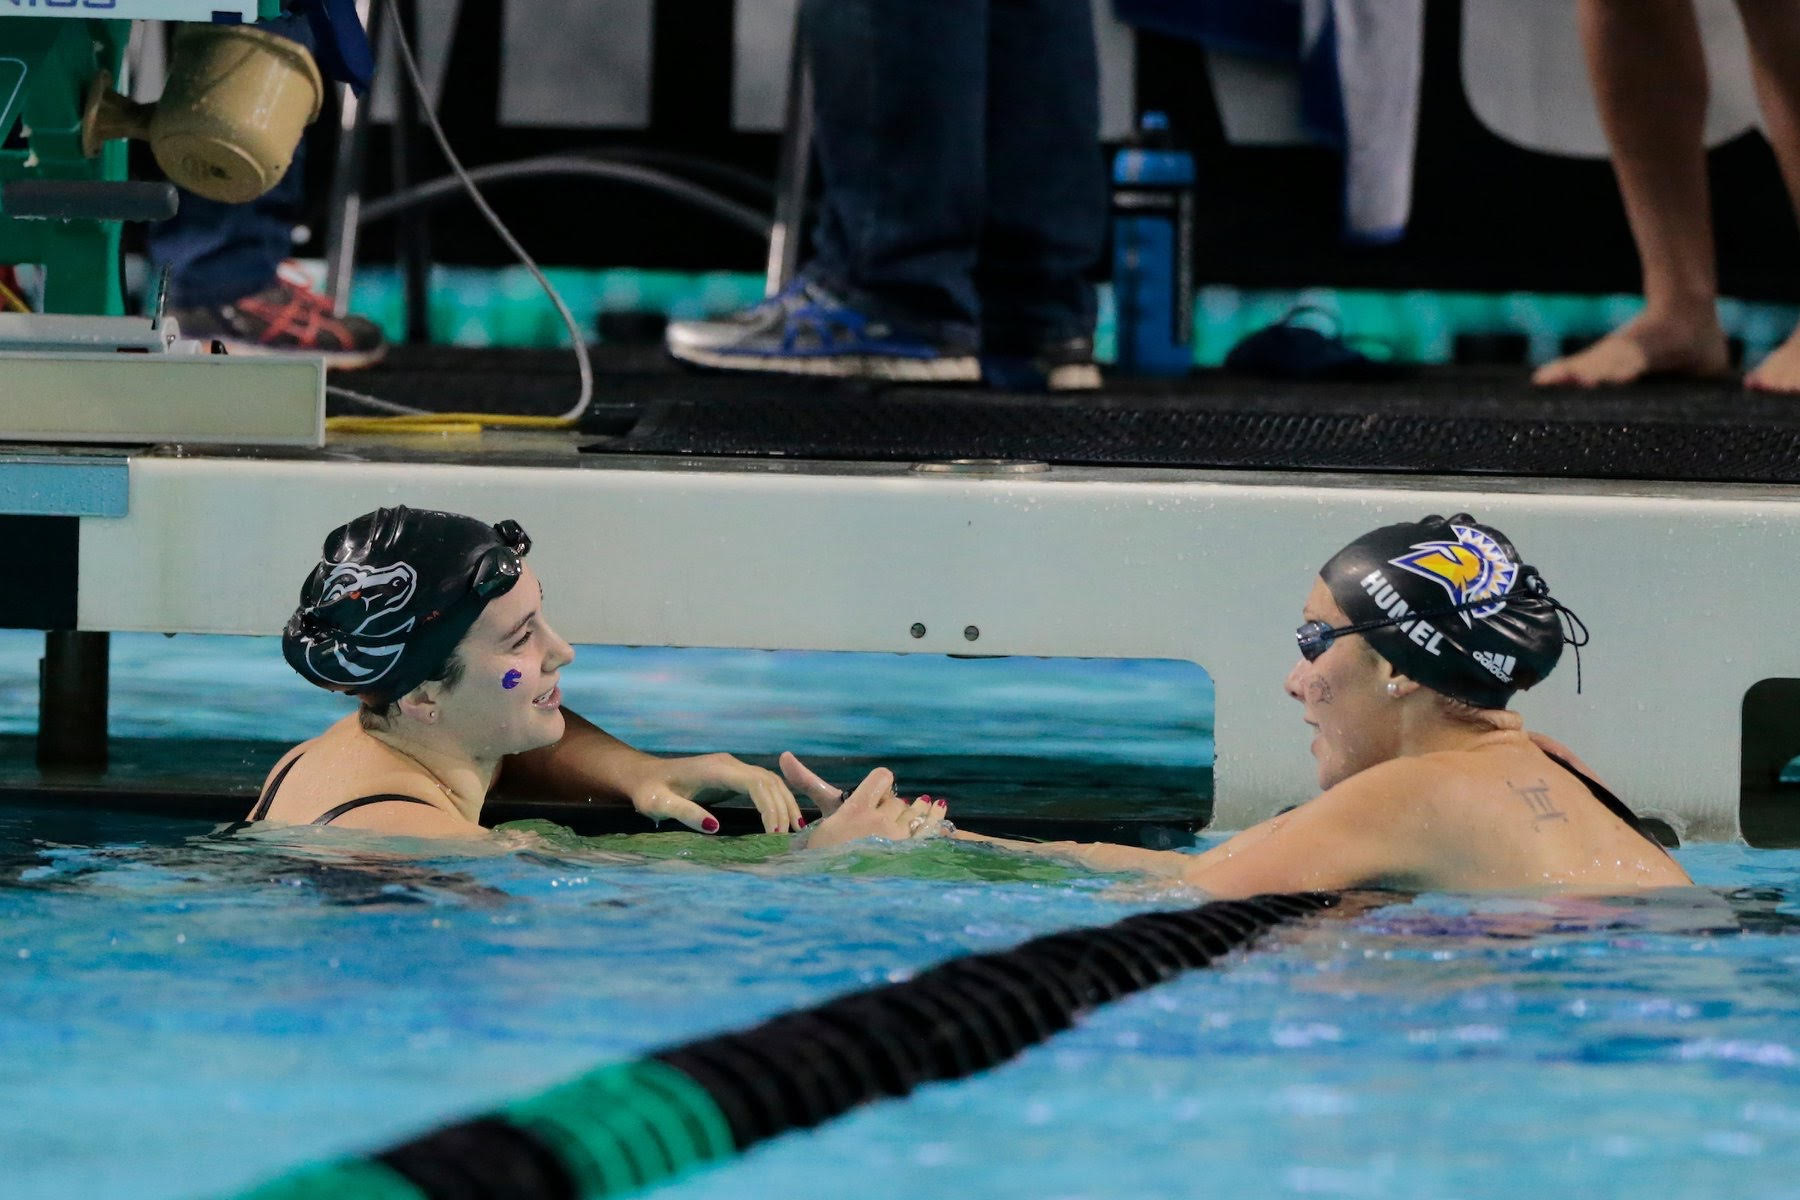 Boise State swimmer Abbey Sorensen, left, shakes hands with a San Jose State opponent following race.